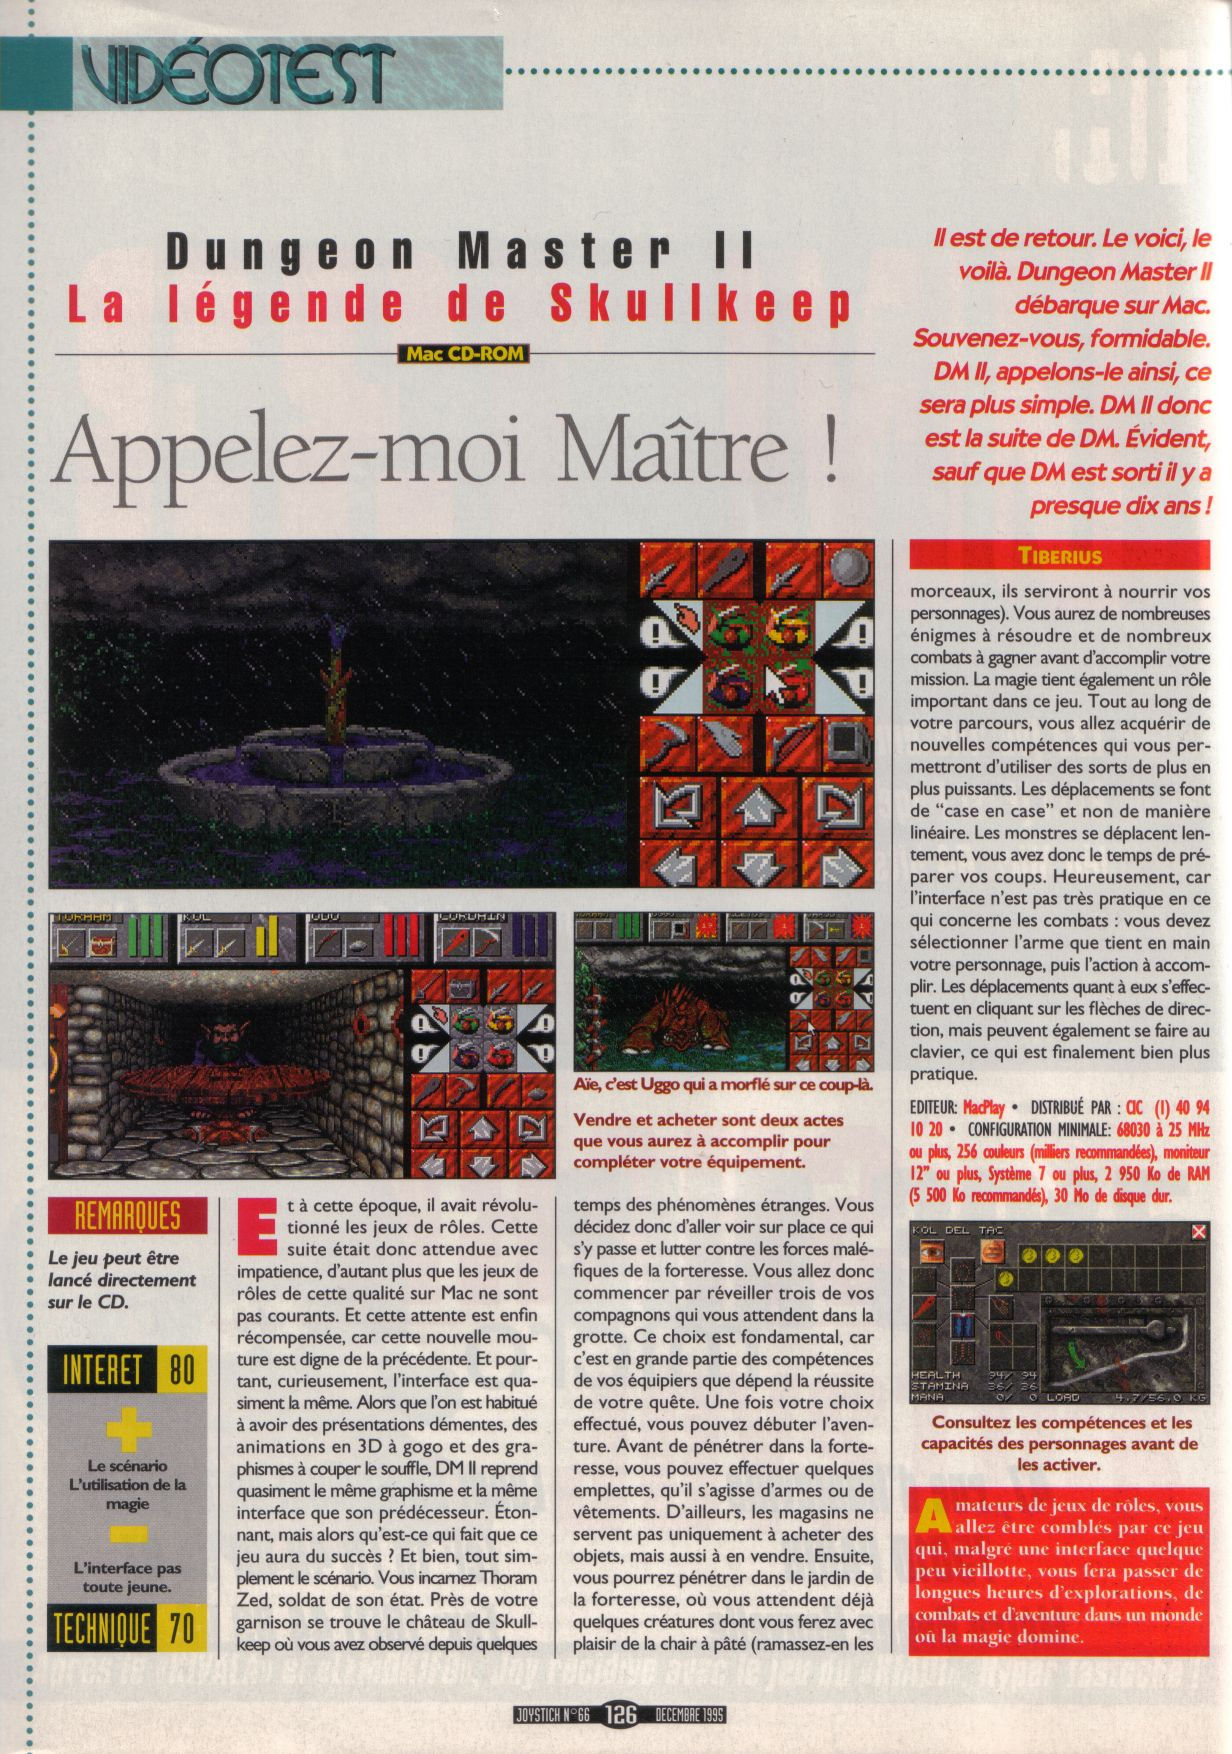 Dungeon Master II for Macintosh Review published in French magazine 'Joystick', Issue #66, December 1995, Page 126